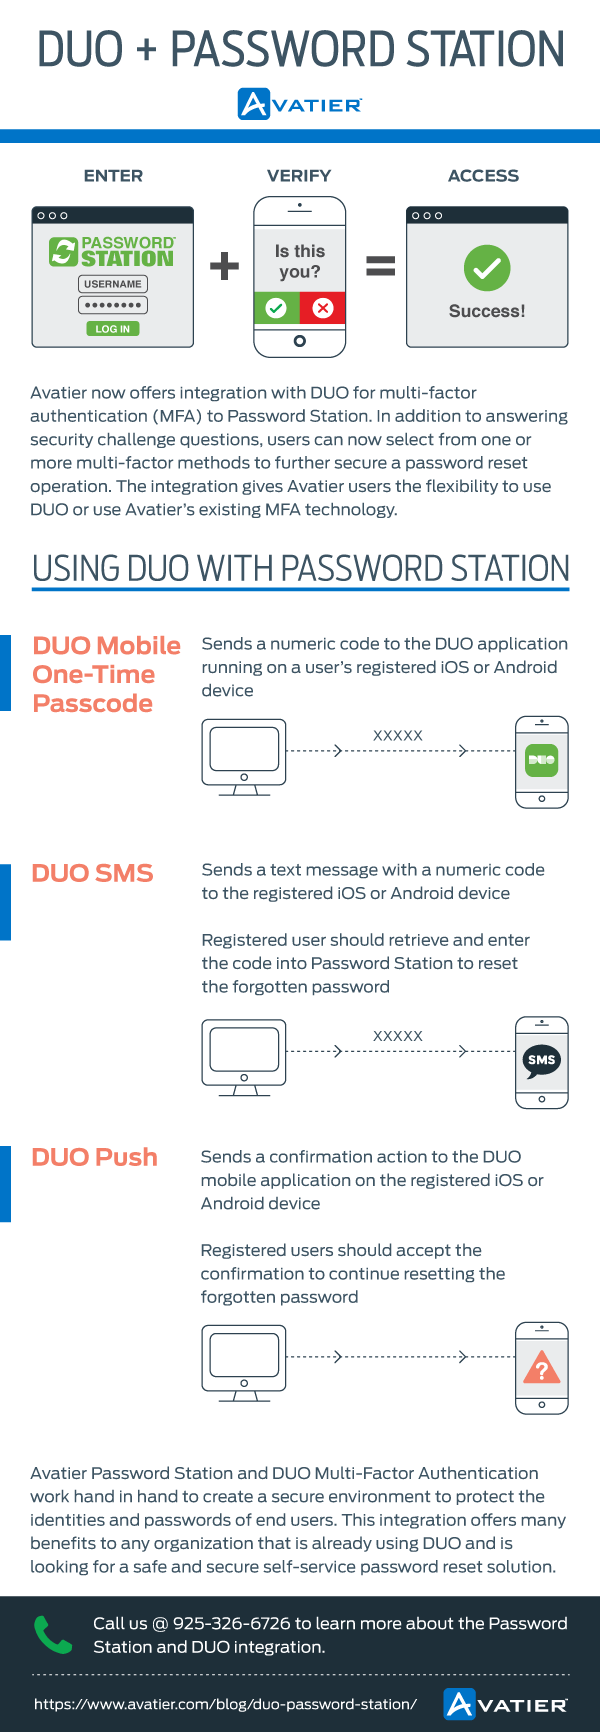 DUO Avatier Password Management